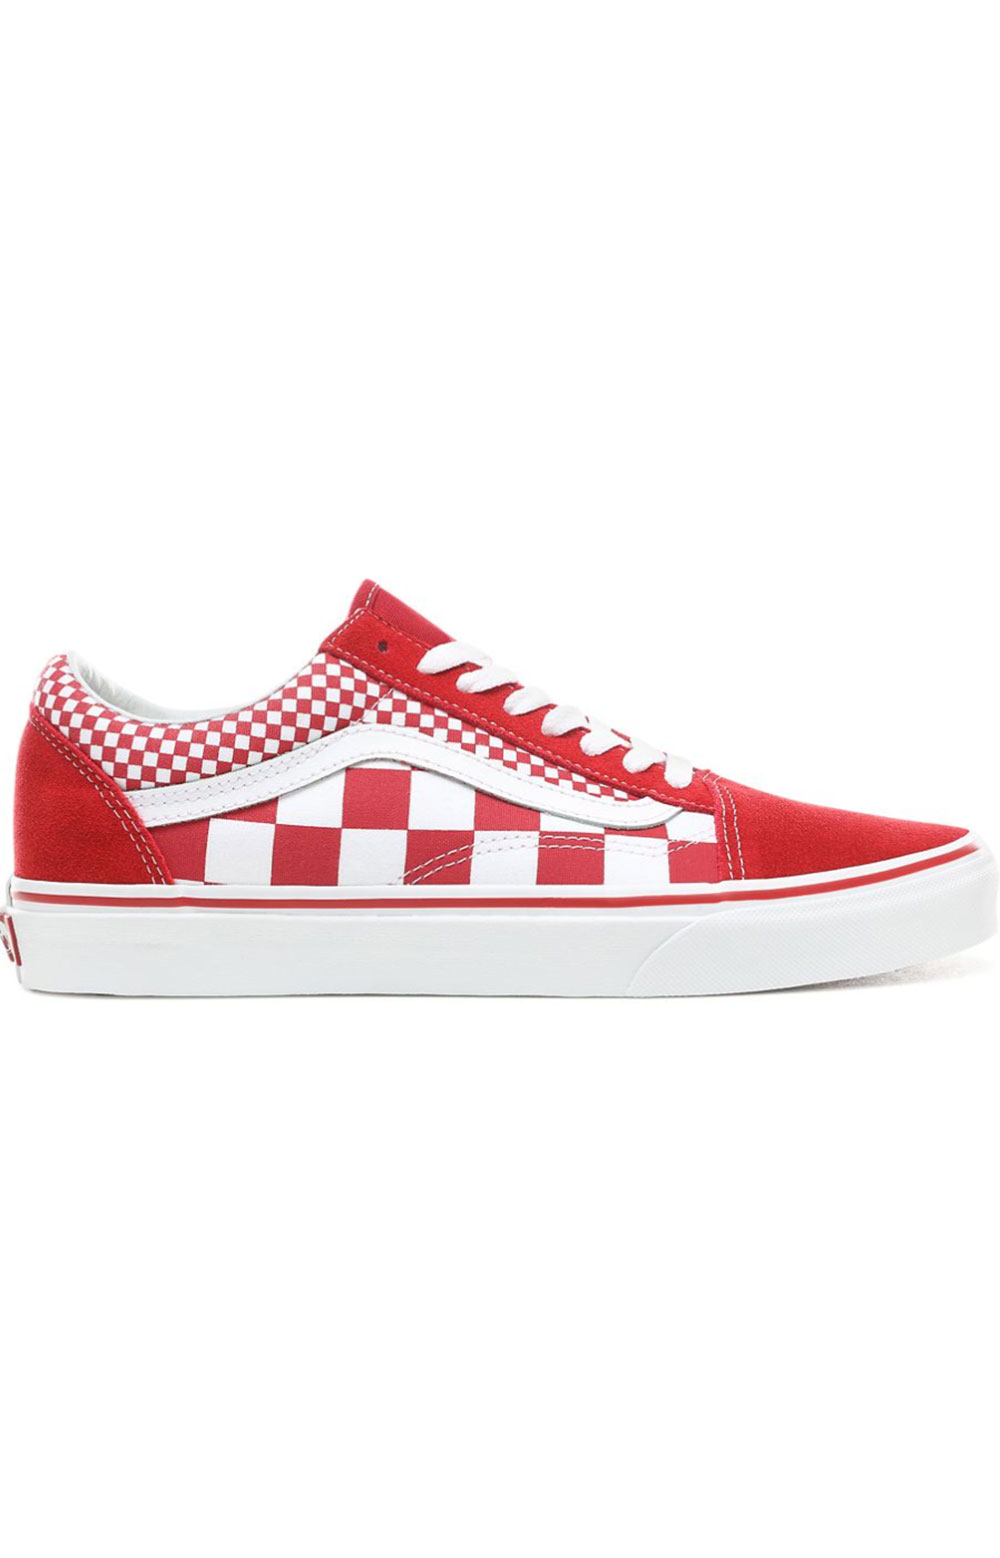 (8G1VK5-) Mix Checker Old Skool Shoe - Red